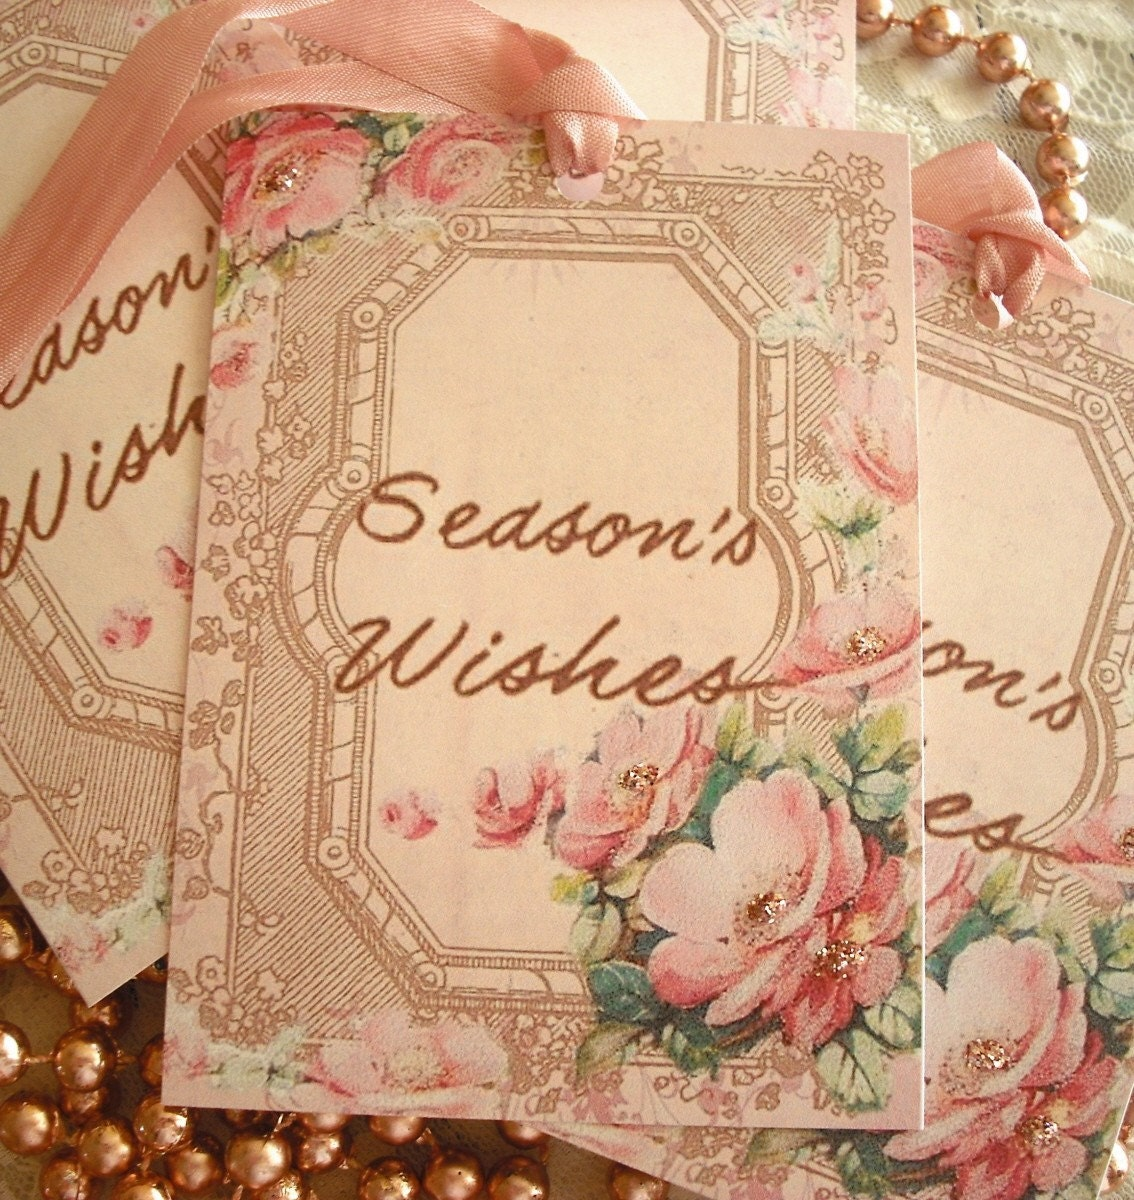 NEW ITEM... VINTAGE INSPIRED PRETTIEST PINK SEASON'S WISHES GIFT TAGS